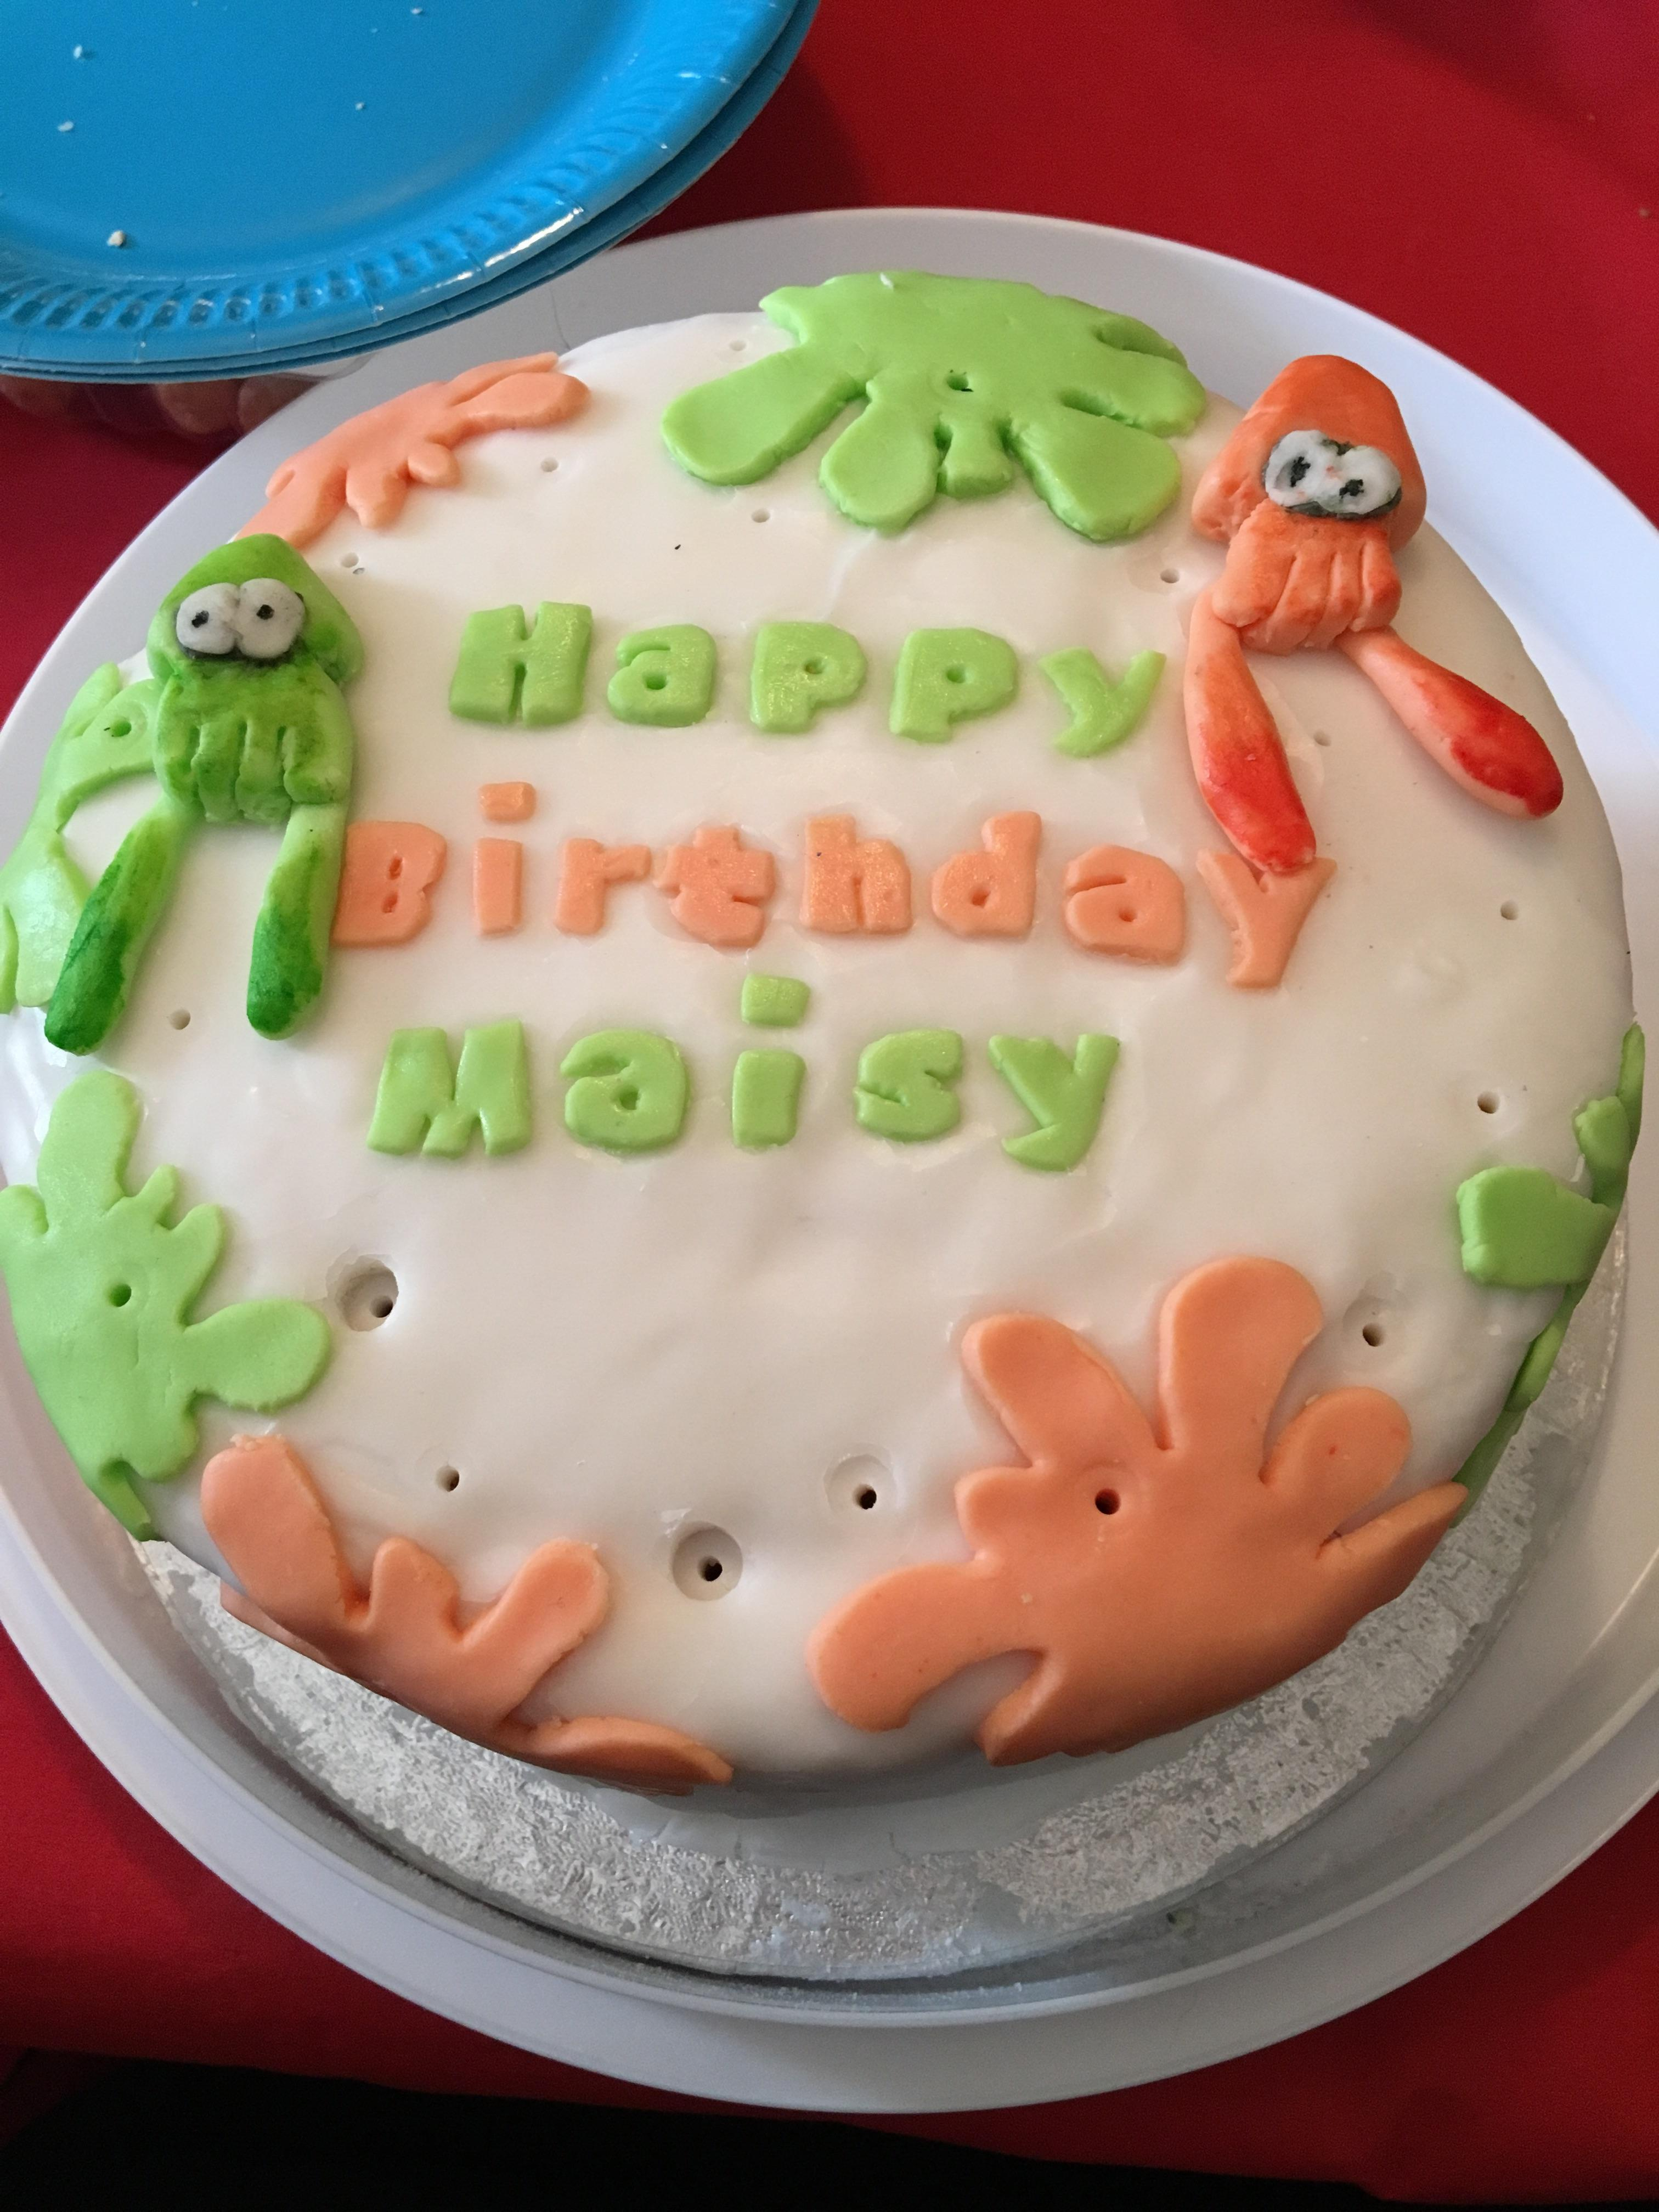 Awesome Birthday Cakes My Sister Baked Me An Awesome Birthday Cake Splatoon